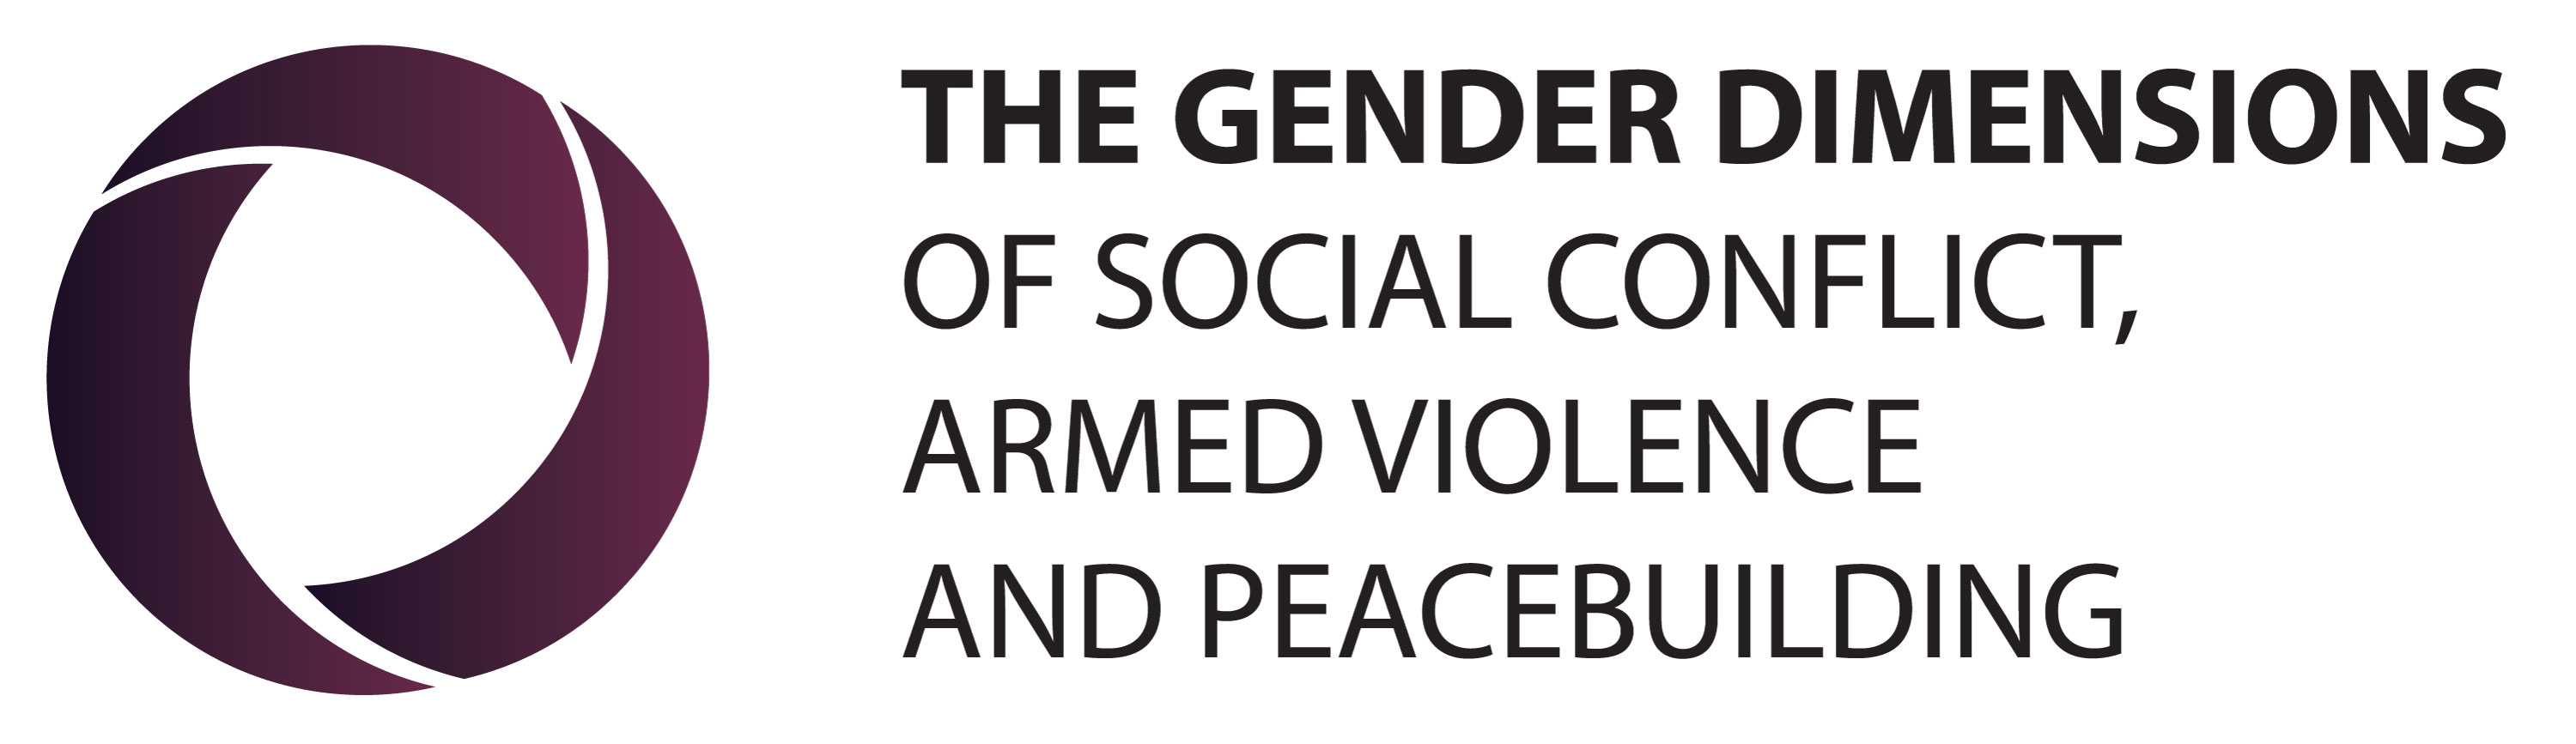 The Gender Dimensions of Social Conflicts, Armed Violence and Peacebuilding